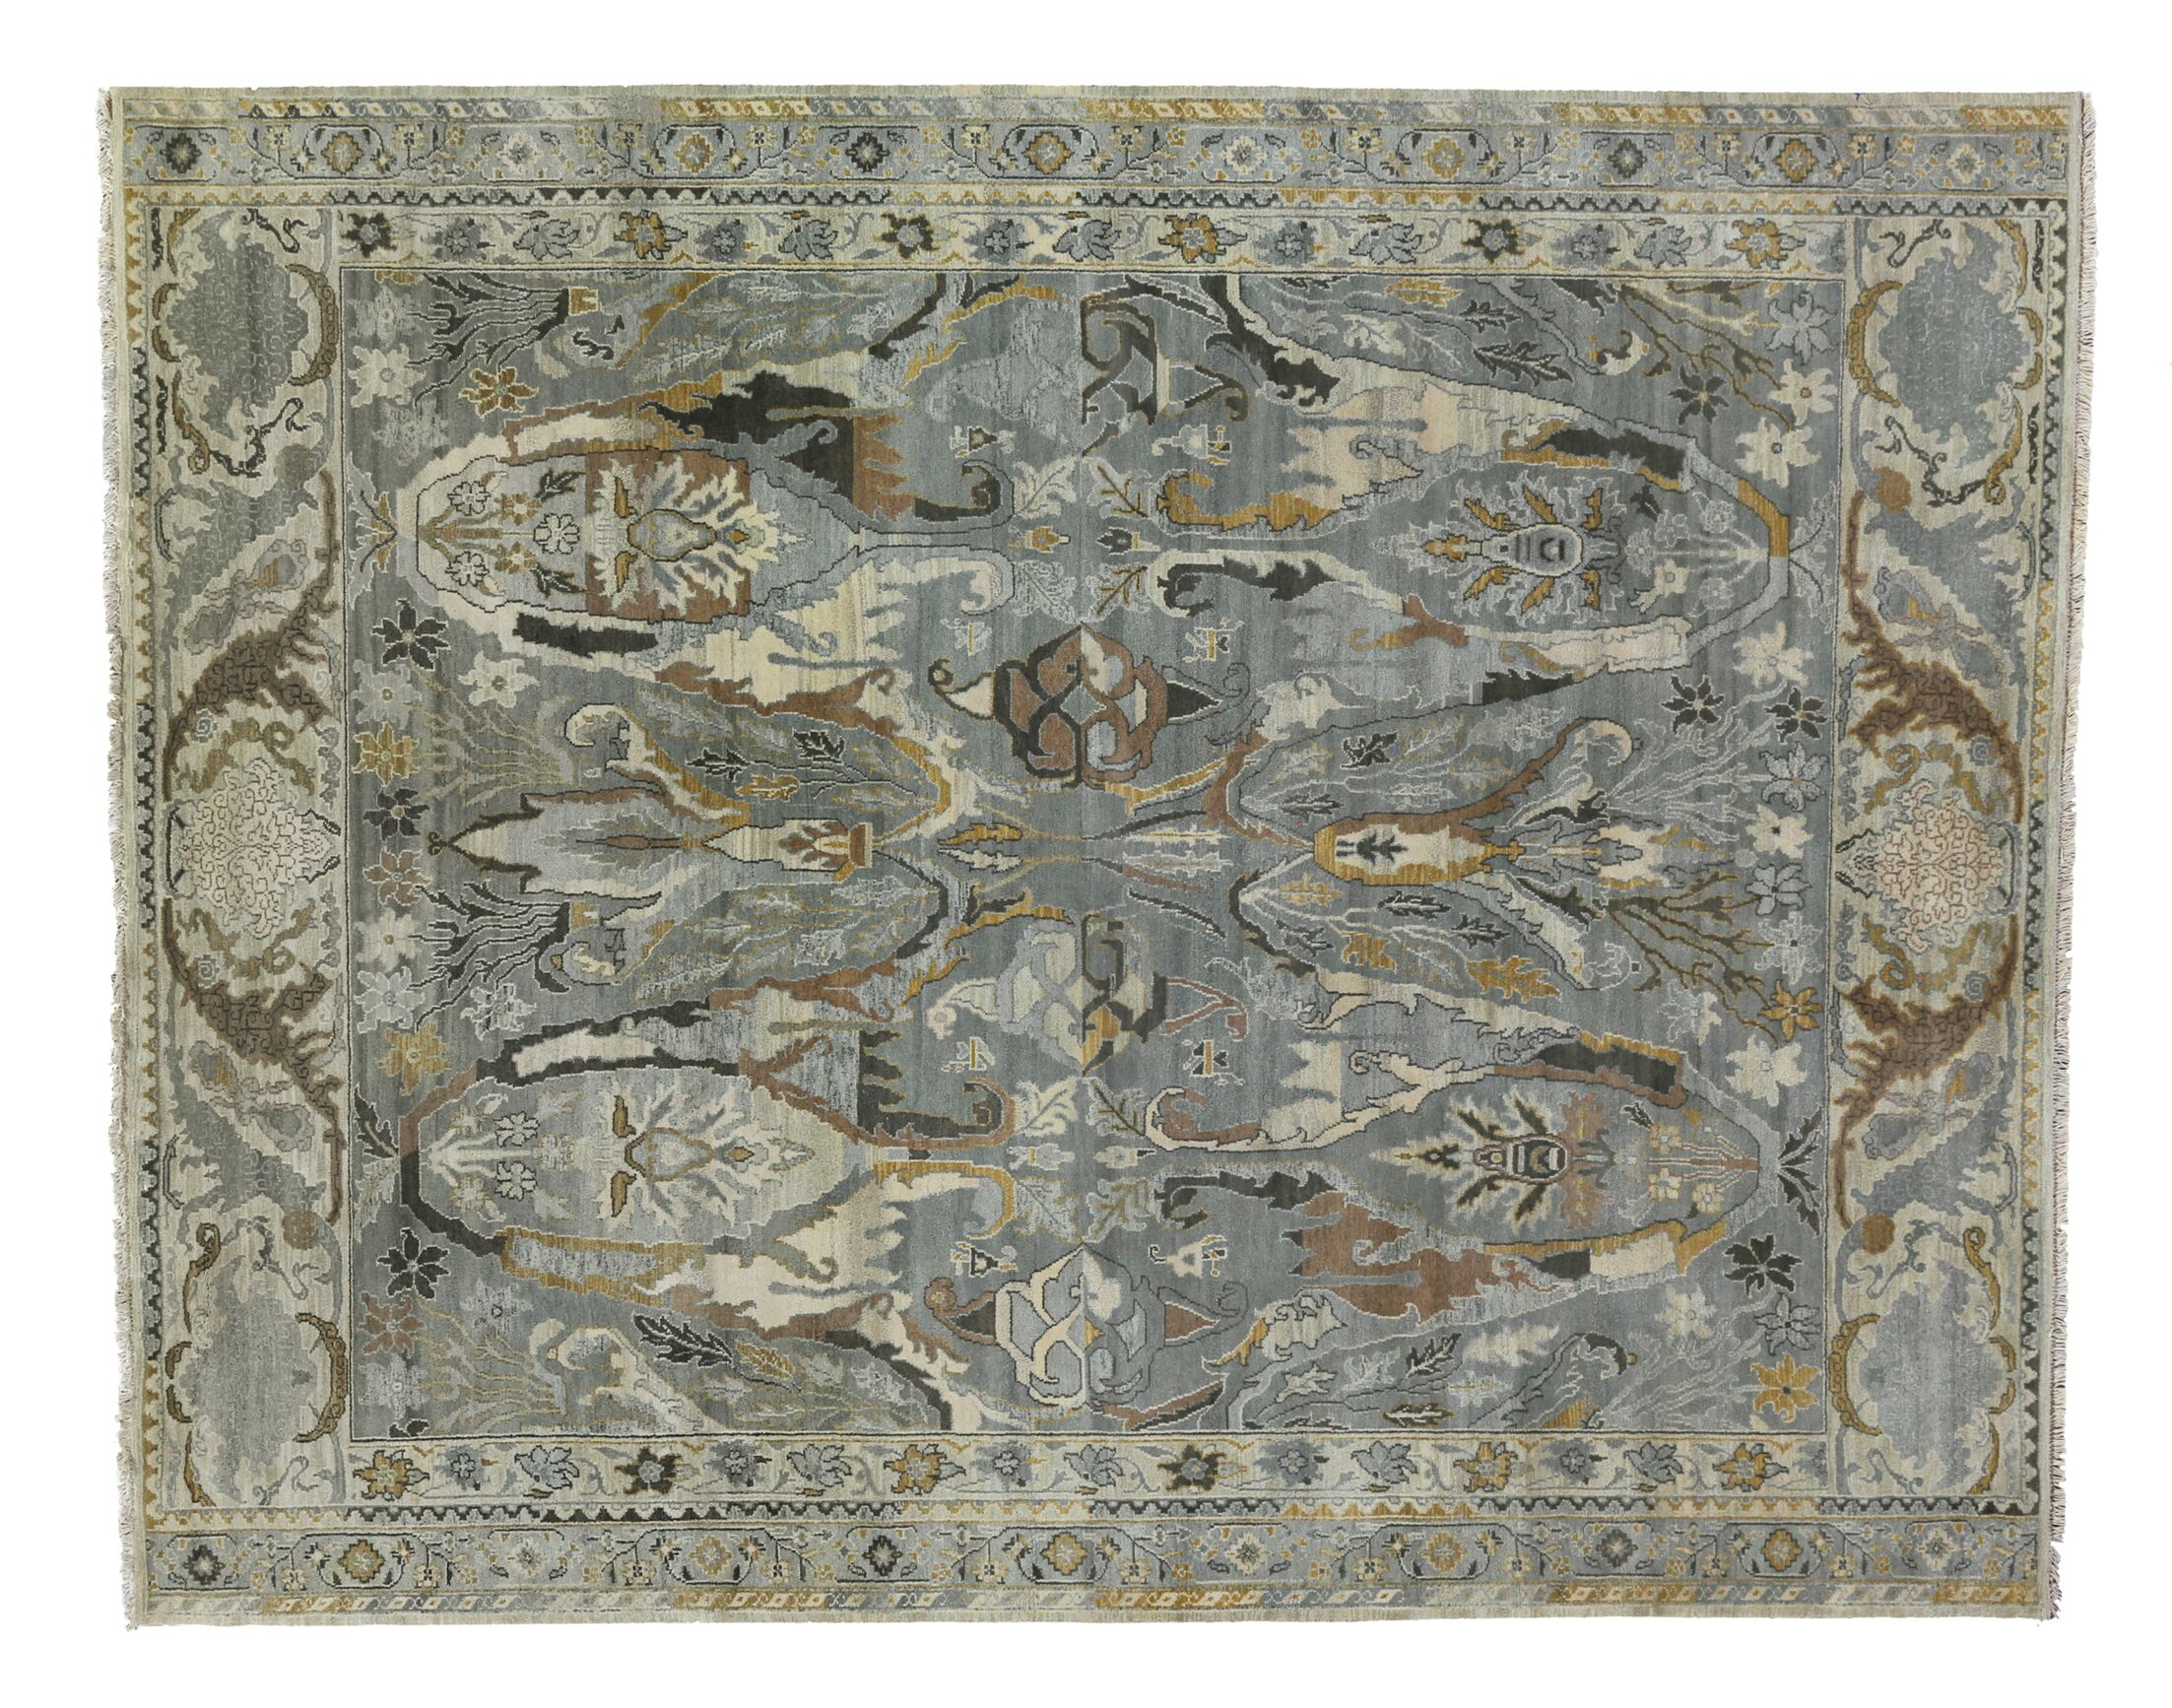 Jurassic Hand-Knotted Wool Gray/Beige Area Rug Rug Size: Rectangle 14' x 18'